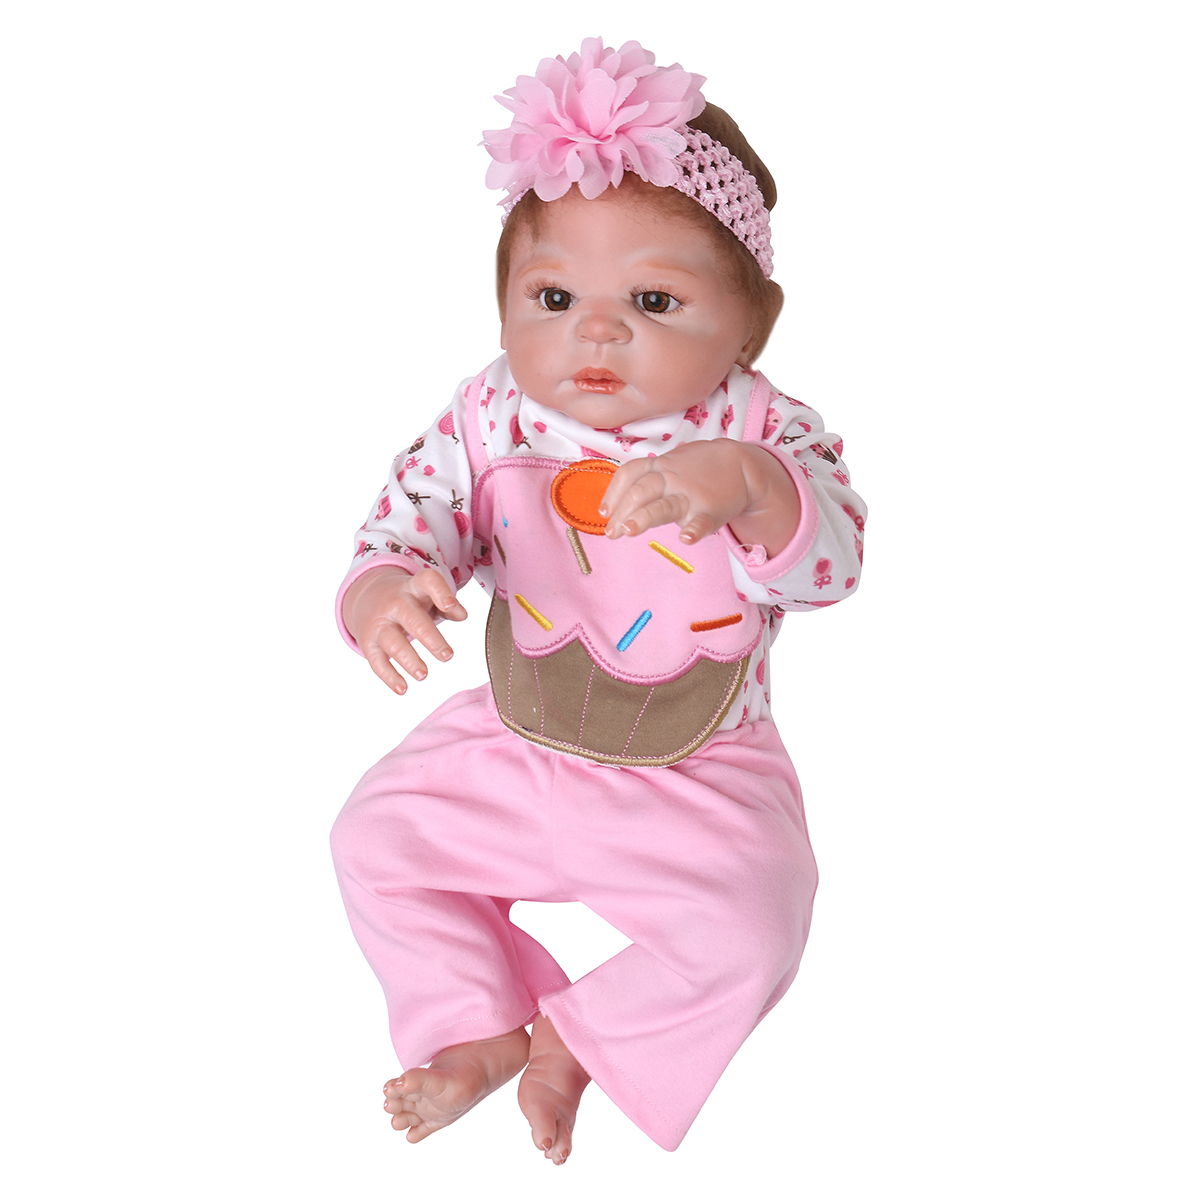 NPK 23 Inch 58cm Reborn Baby Soft Silicone Doll Handmade Lifeike Baby Girl Dolls Play House Toys Birthday Gift